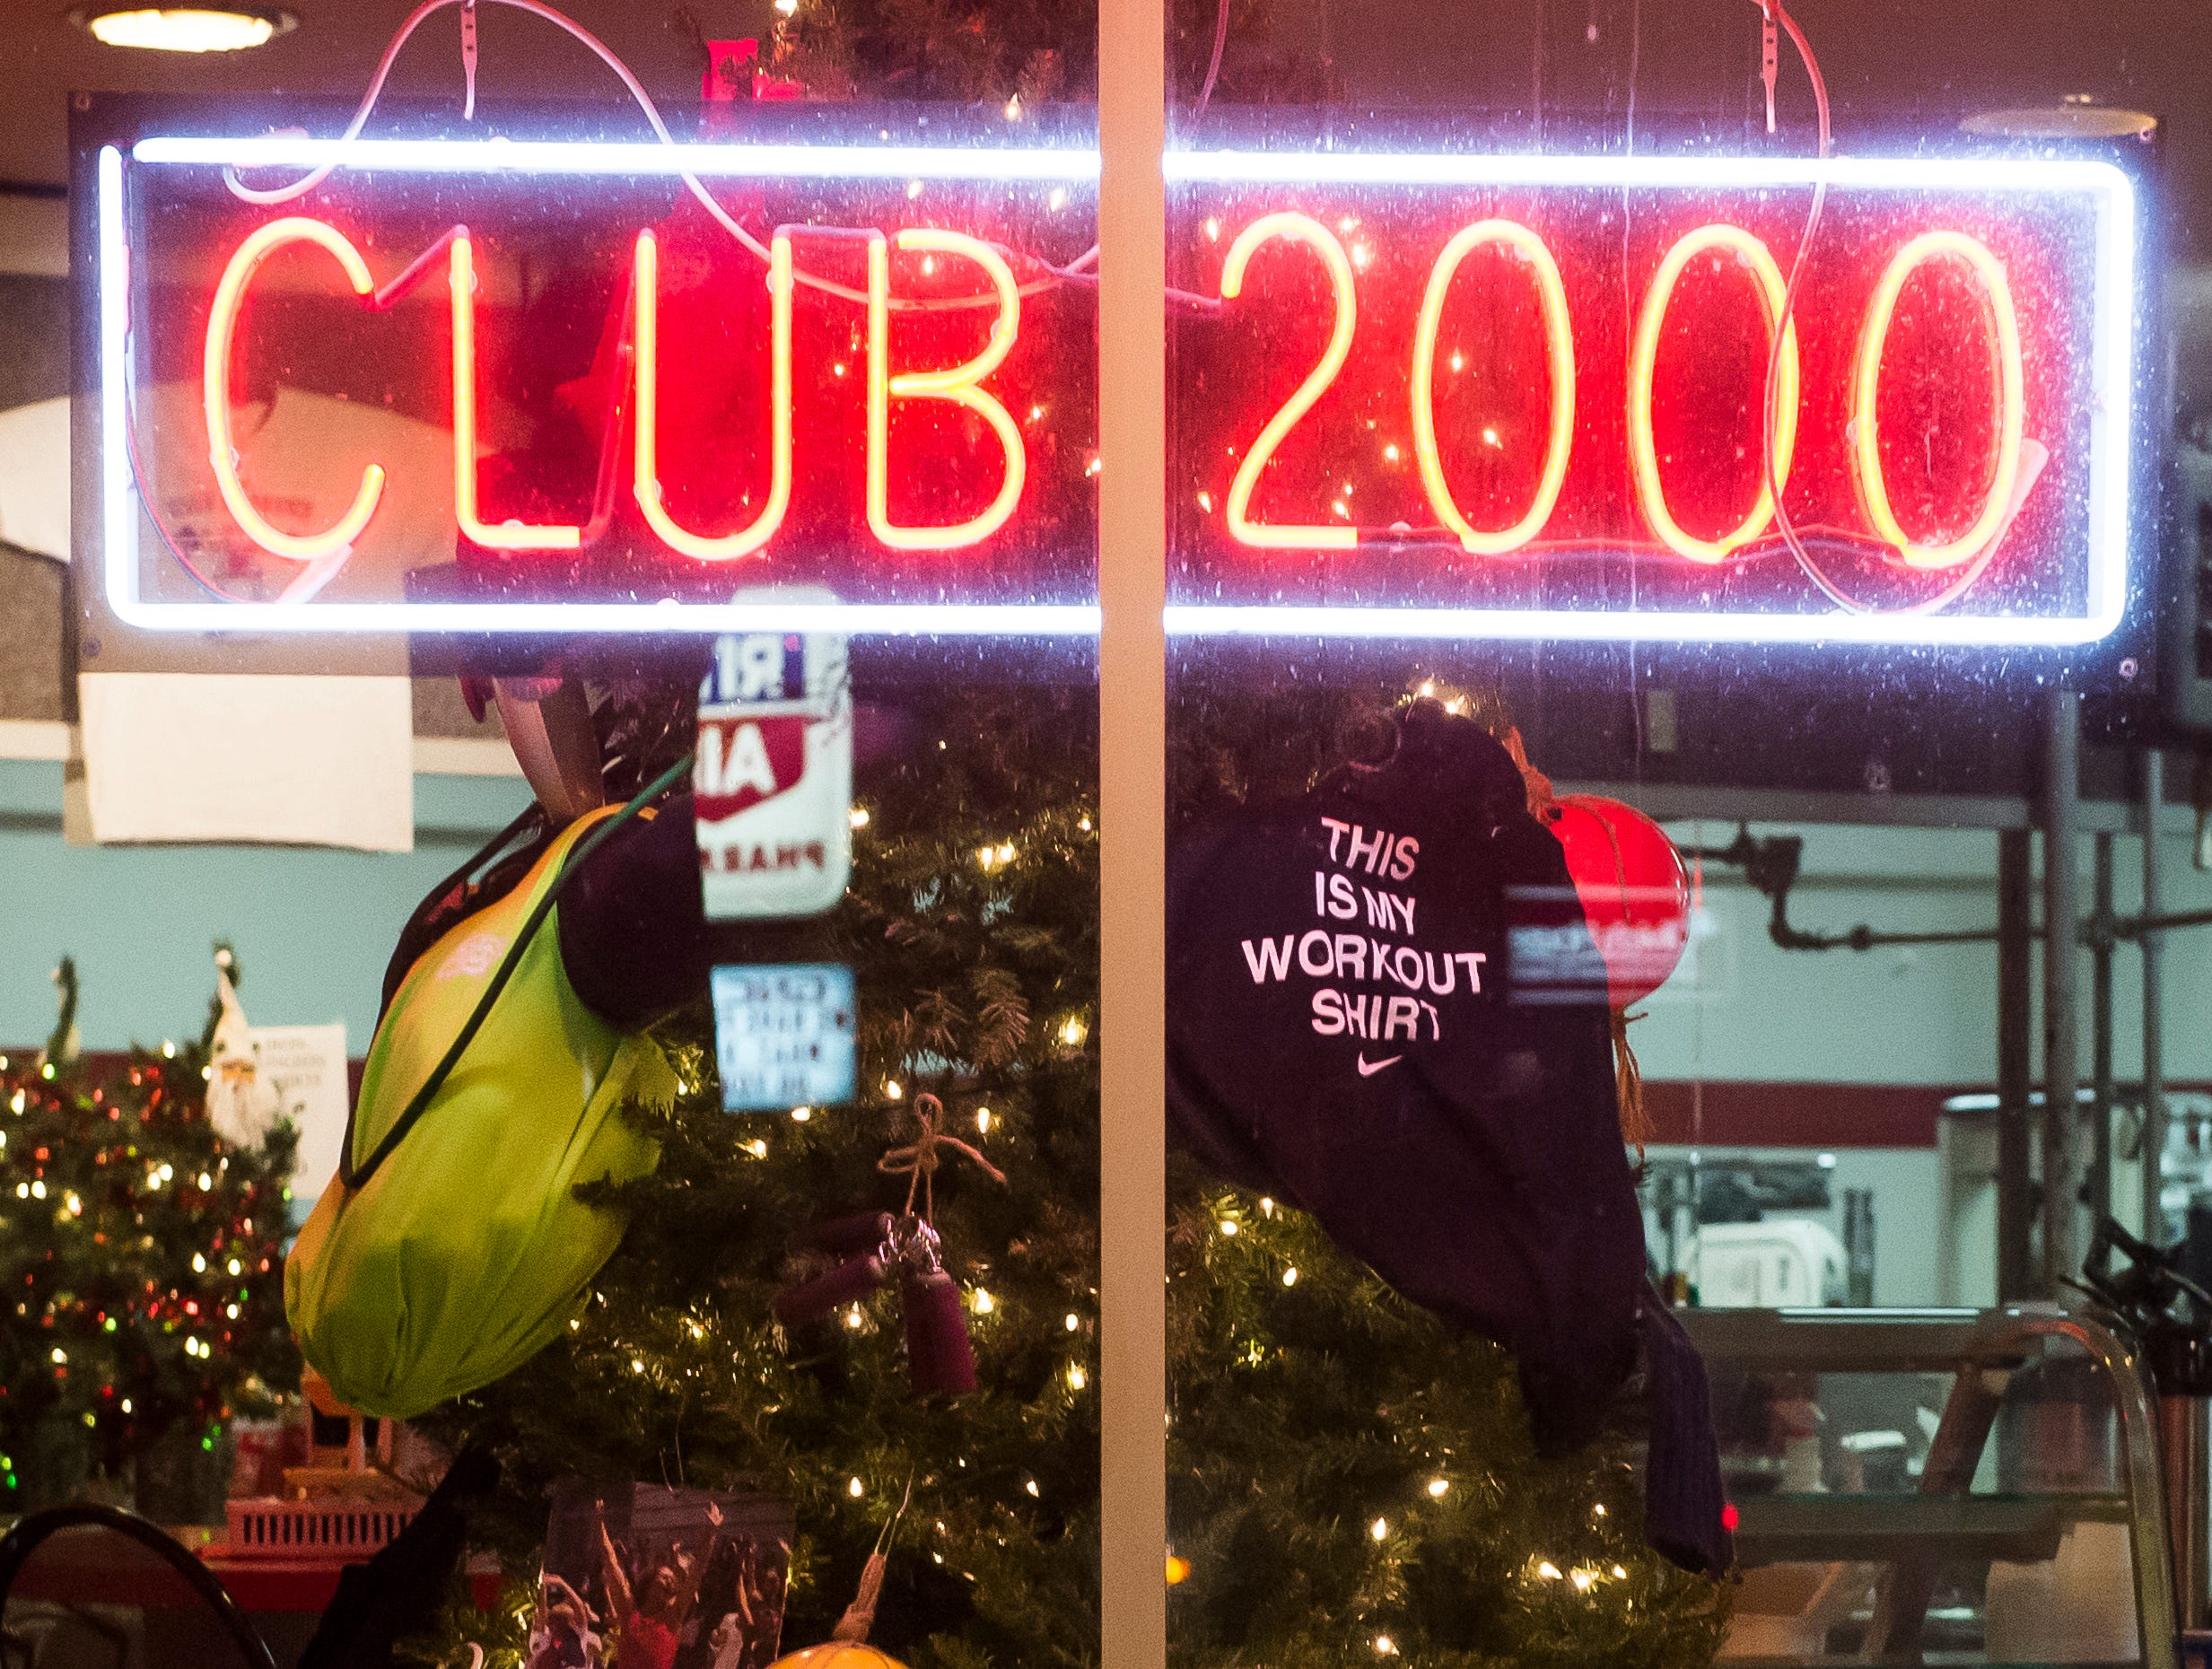 Club 2000 located at 28 Baltimore St. Visit mainstreethanover.org for details about Christmas Tree Wars.